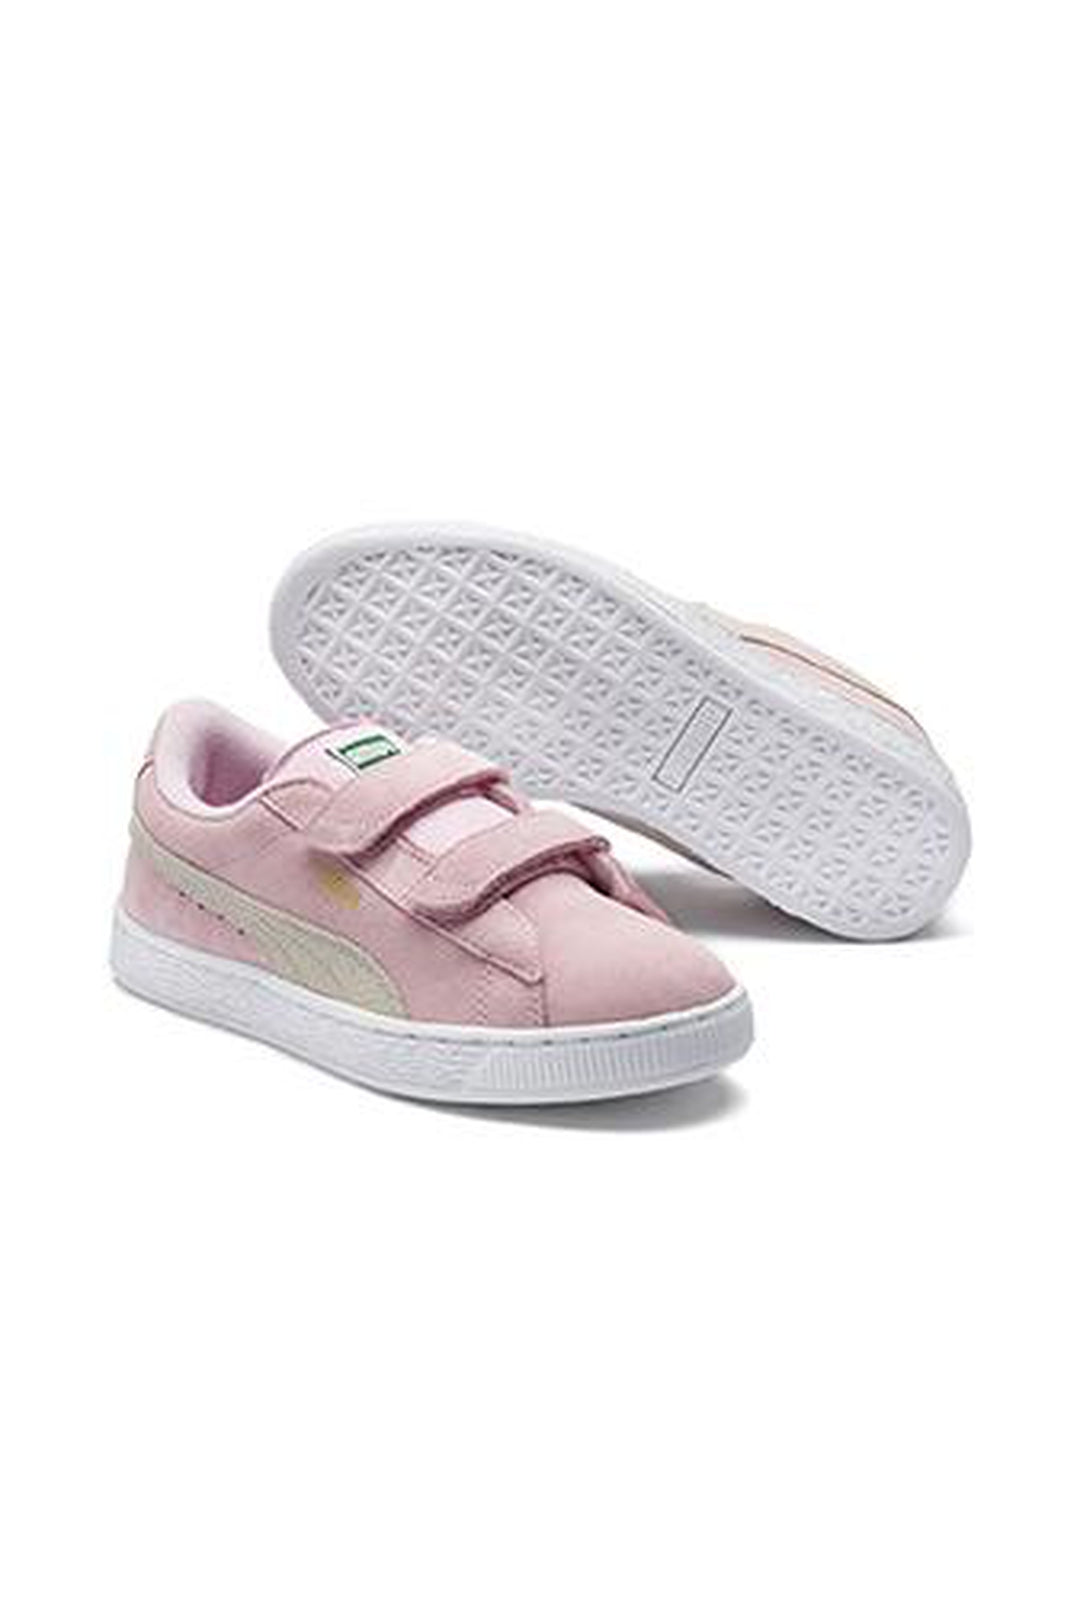 finest selection 123d5 f8446 PUMA SUEDE 2 STRAPS YOUTH - PINK